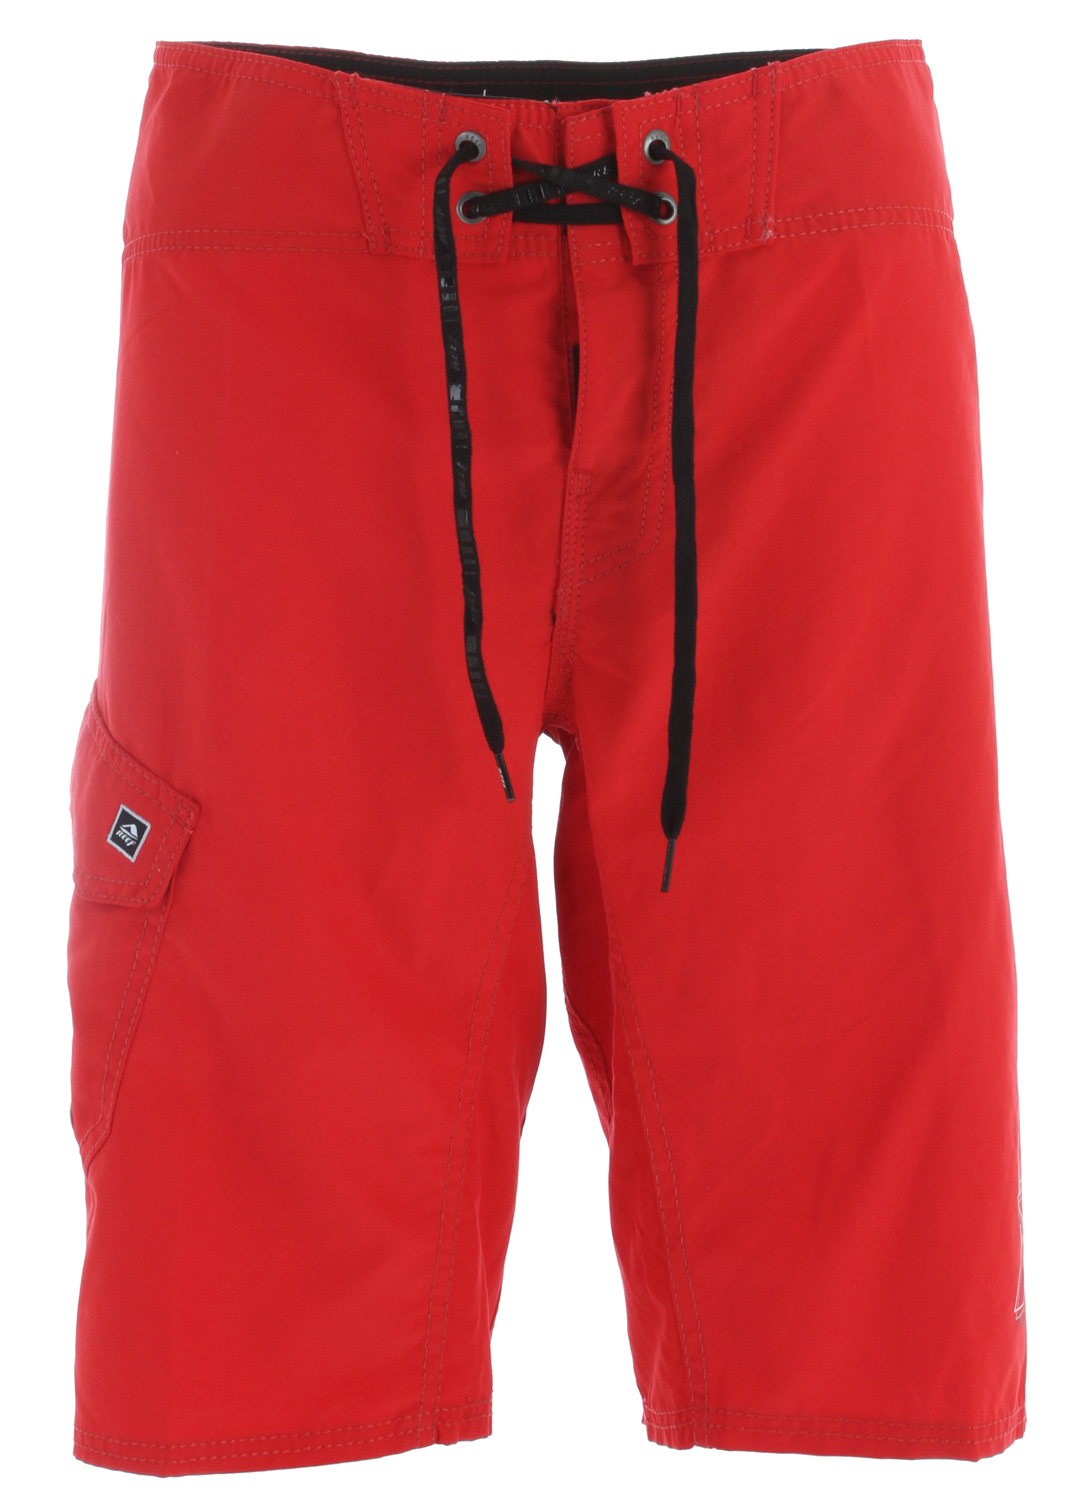 "Surf Key Features of the Reef Ponto Beach 2 Boardshorts: Pro-am microfiber 100% polyester 22"" outseam - $30.95"